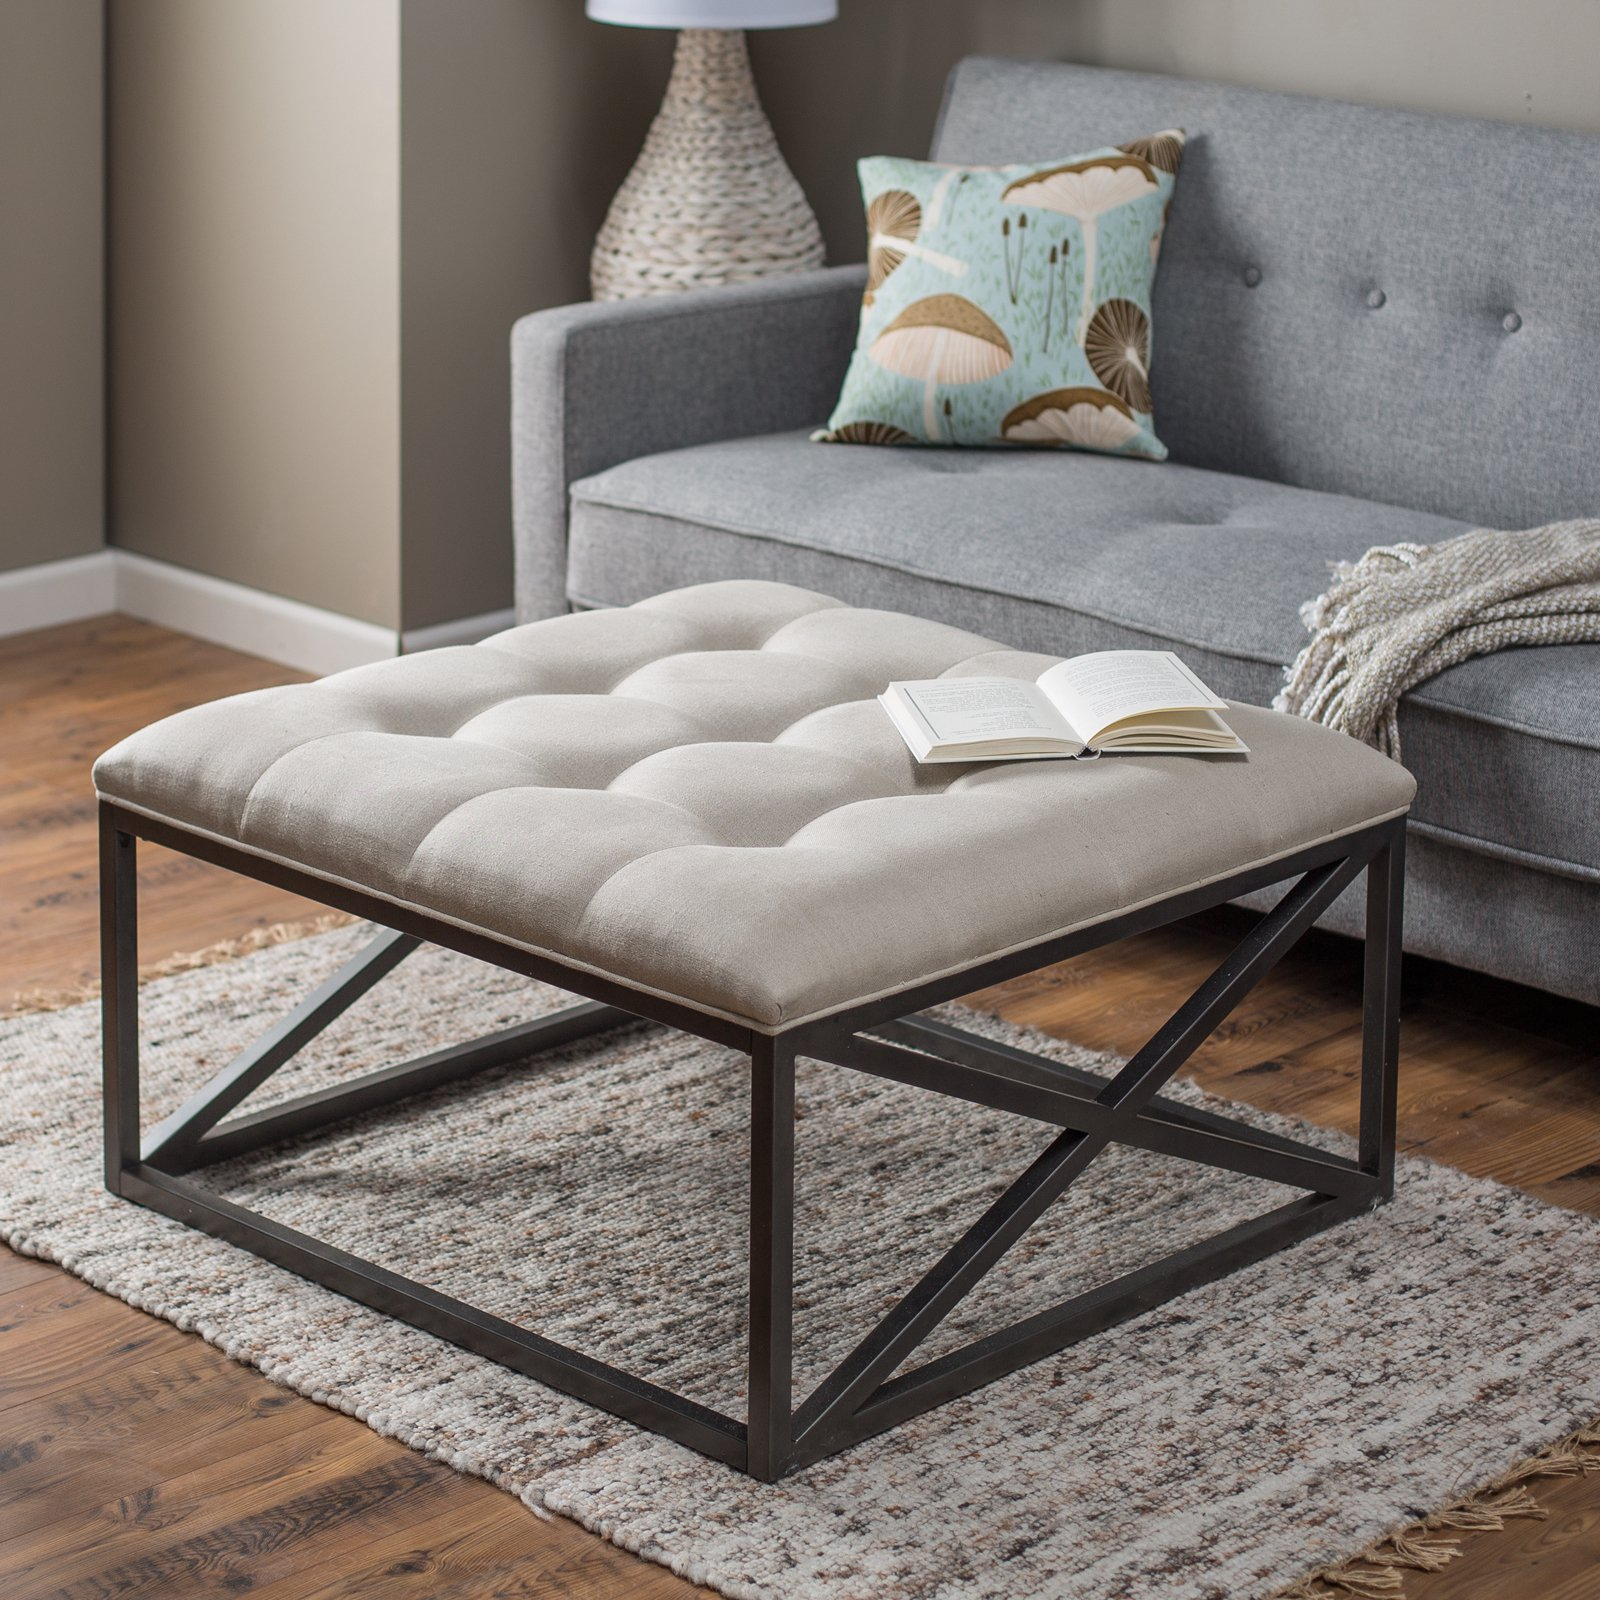 Merihill Coffee Table With Ottoman: 8 Plush Tufted Ottomans To Add Comfort And Functionality